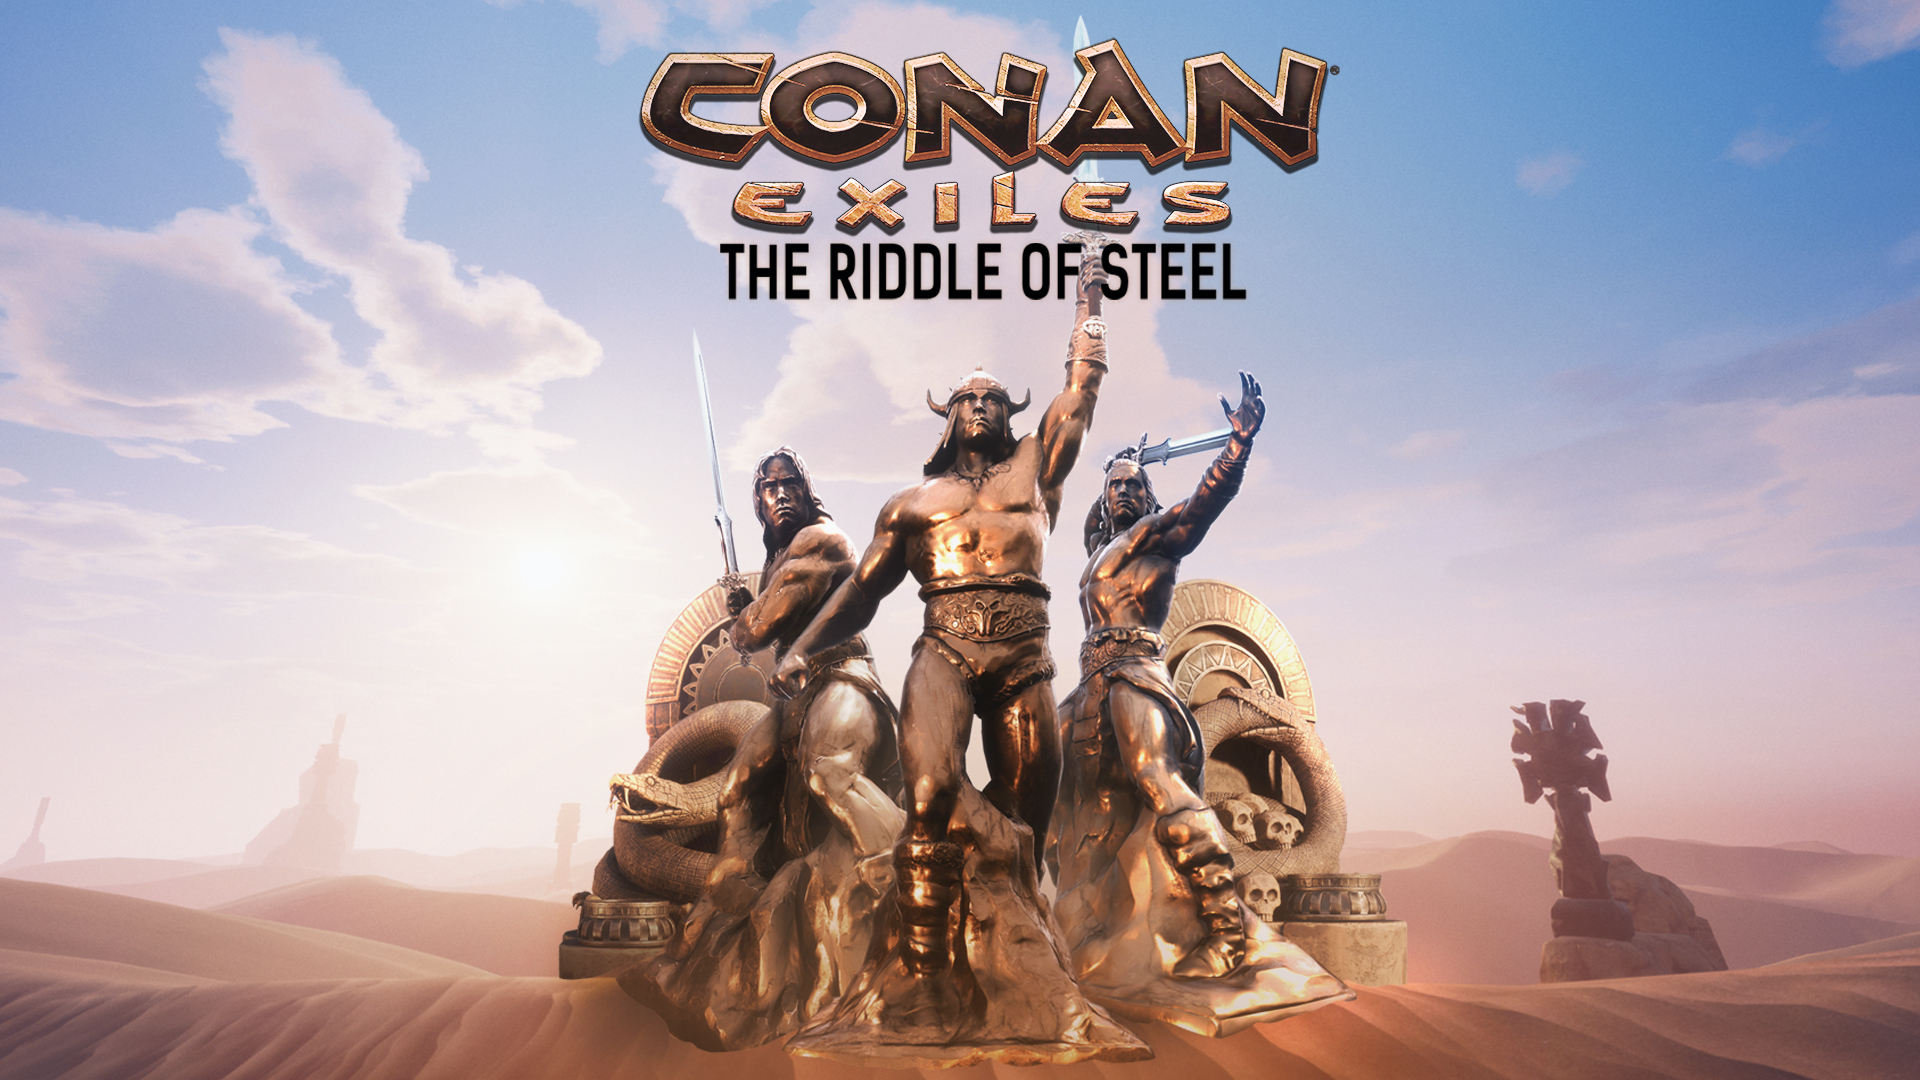 Conan Exiles - The Riddle of Steel.jpg